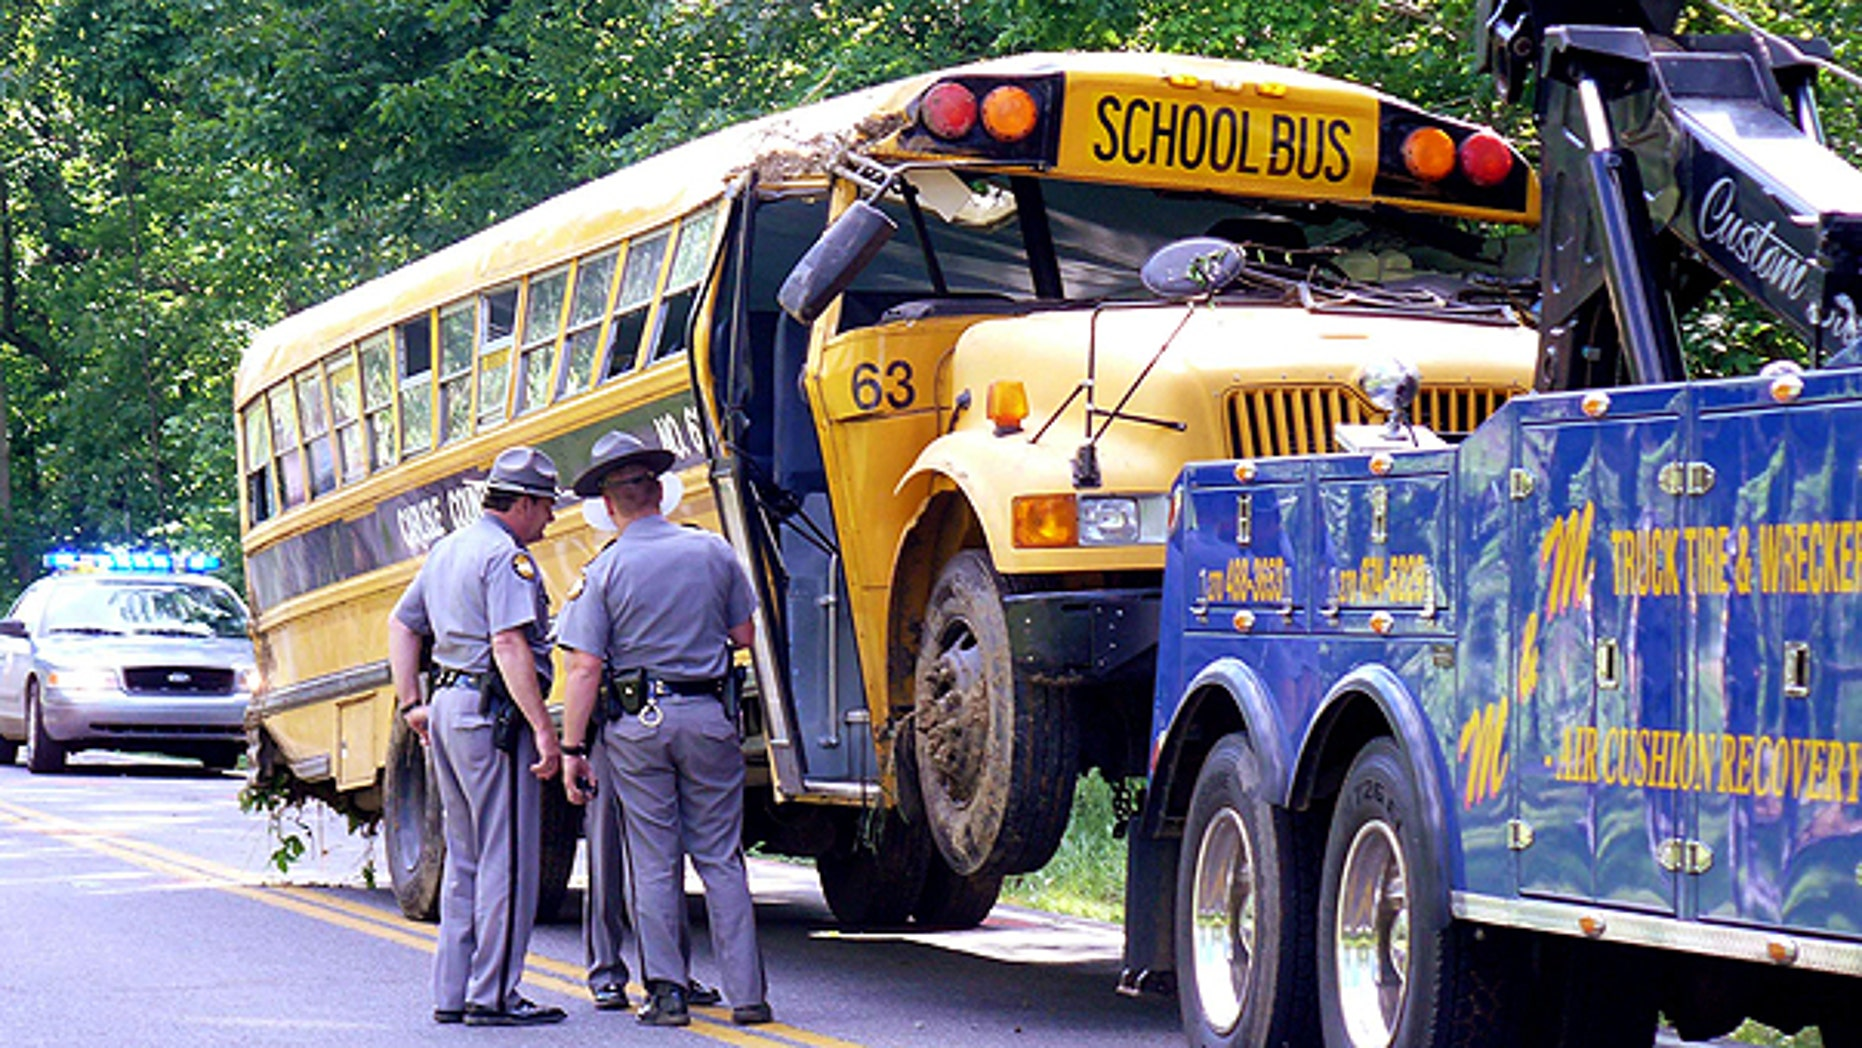 May 16: Kentucky State Police troopers gather around a Carlisle County school bus that crashed along U.S. 62 near the intersection of Ky. 307 in Carlisle County near the community of Cunningham, Ky.